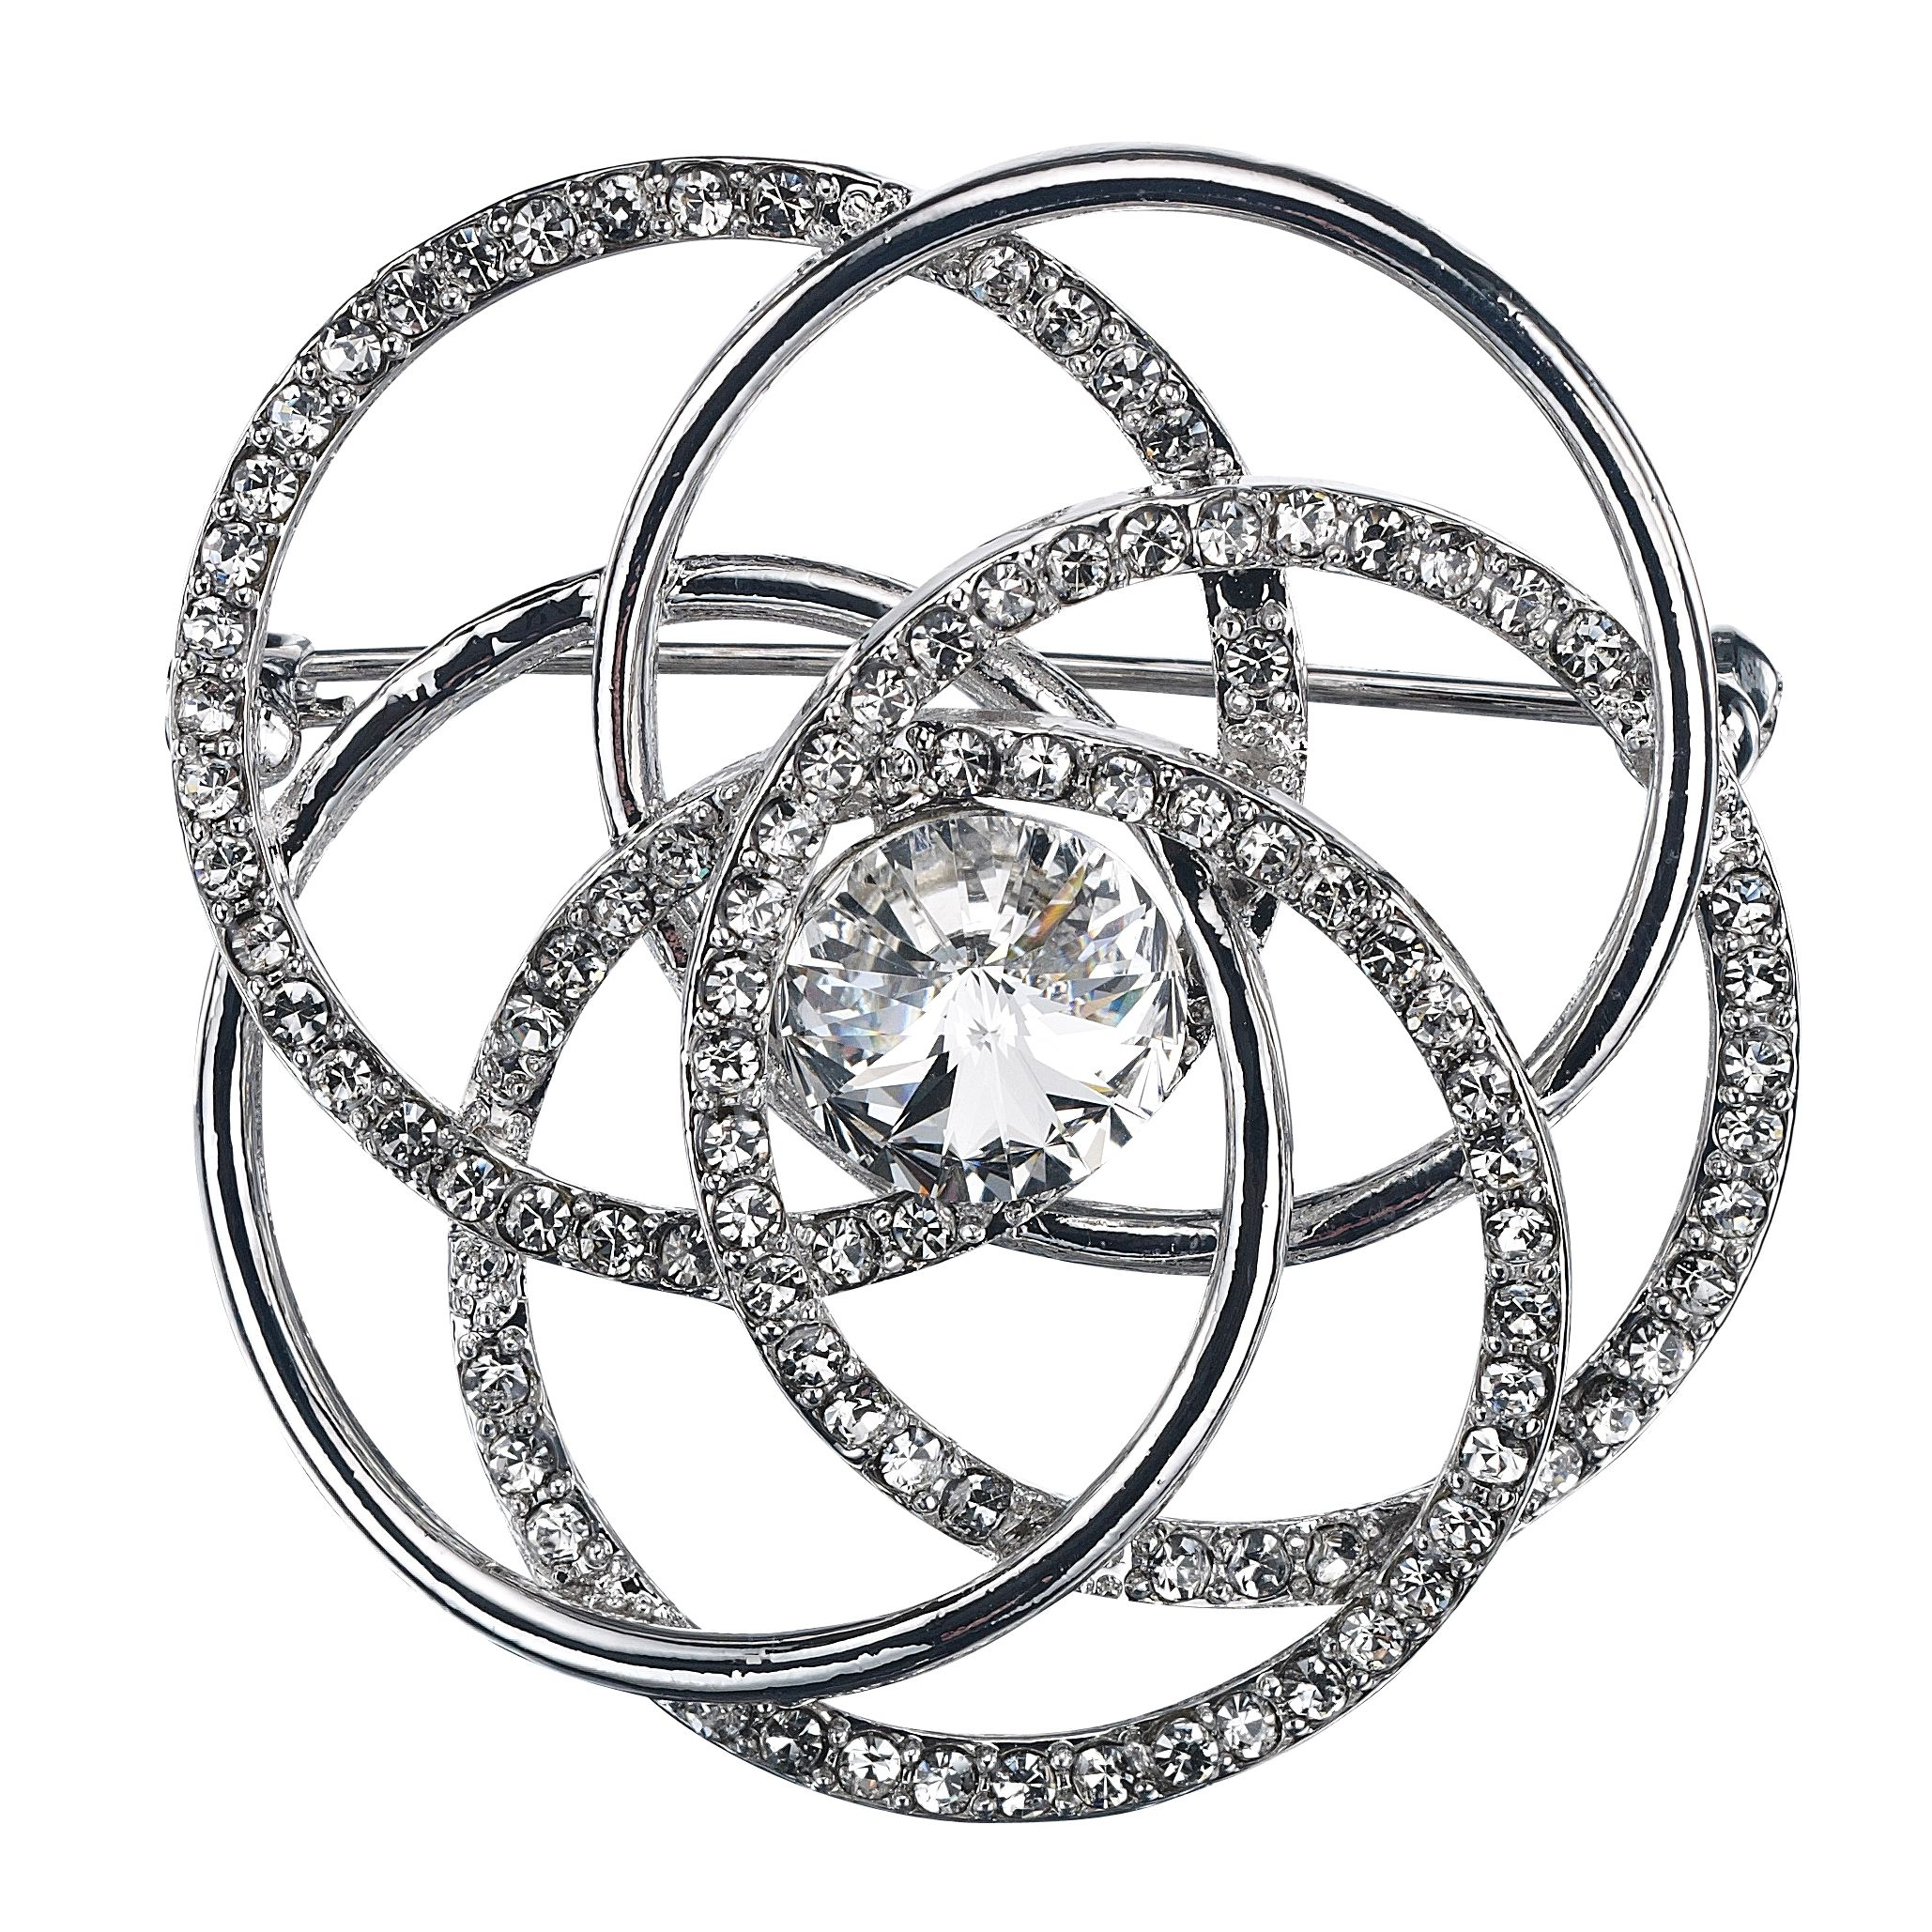 Entwined circle brooch